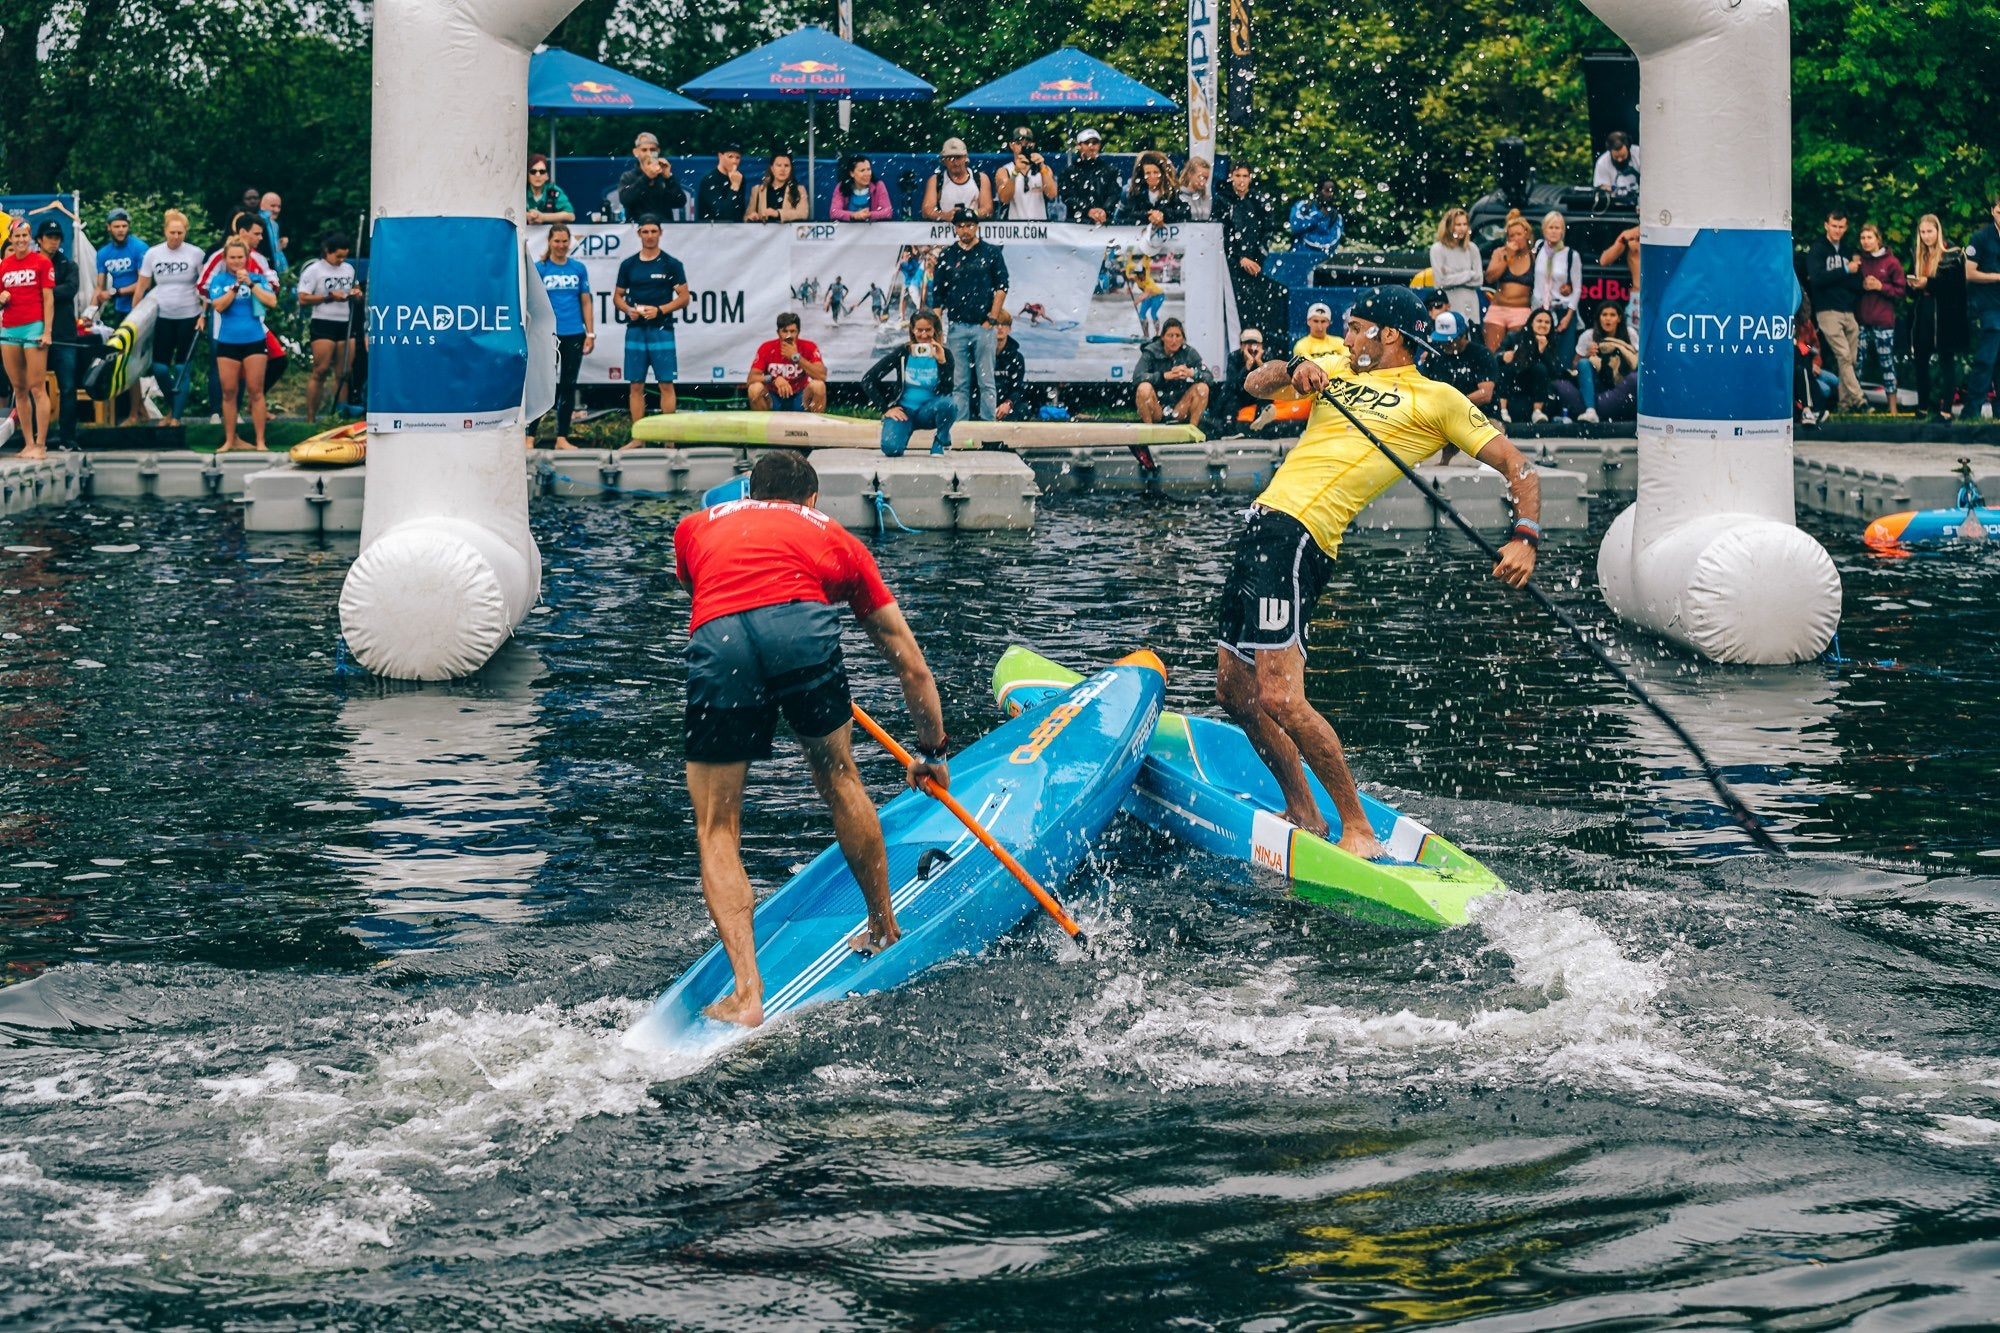 APP World Tour London 2019 - SUP Sprint